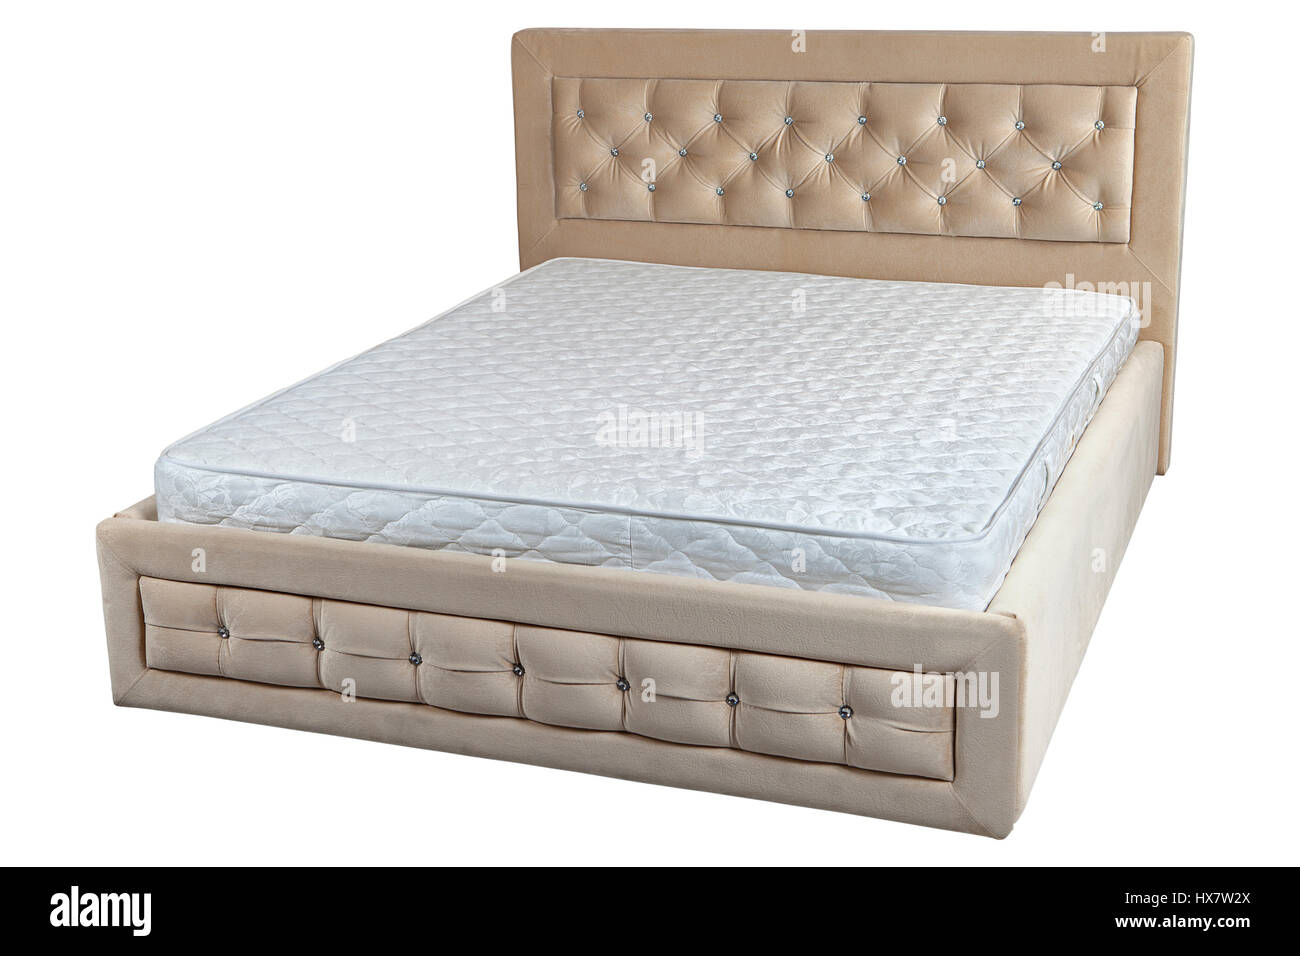 Double Bed With Mattress Deals Lift Up Double Bed With Storage Space And Orthopedic Mattress Big